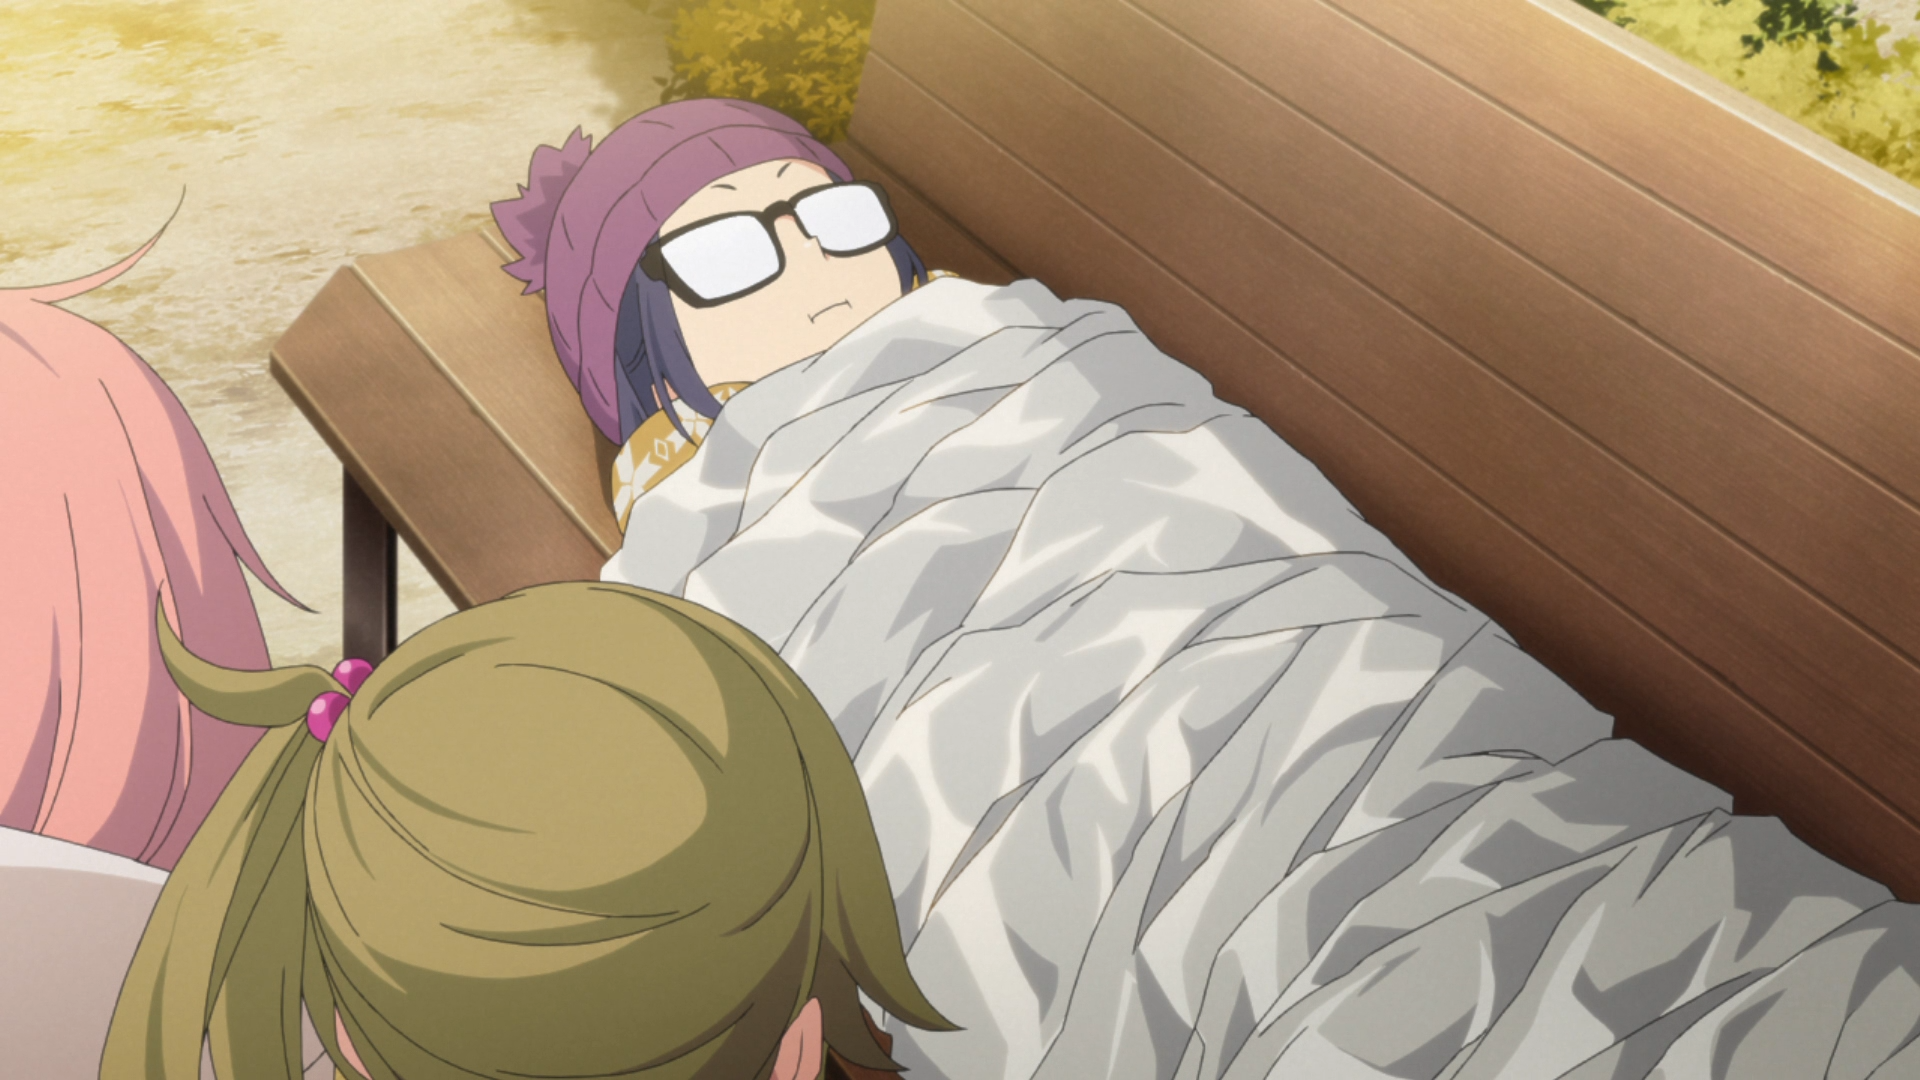 Chiaki Ogaki, Nadeshiko Kagamihara, and Aoi Inuyama of the Outdoor Activities Club attempt to turn a thin summer camping blanket into an insulated winter camping blanket with a copious application of bubble-wrap, aluminum foil, and cardboard in a scene from the 2018 Laid-Back Camp TV anime.